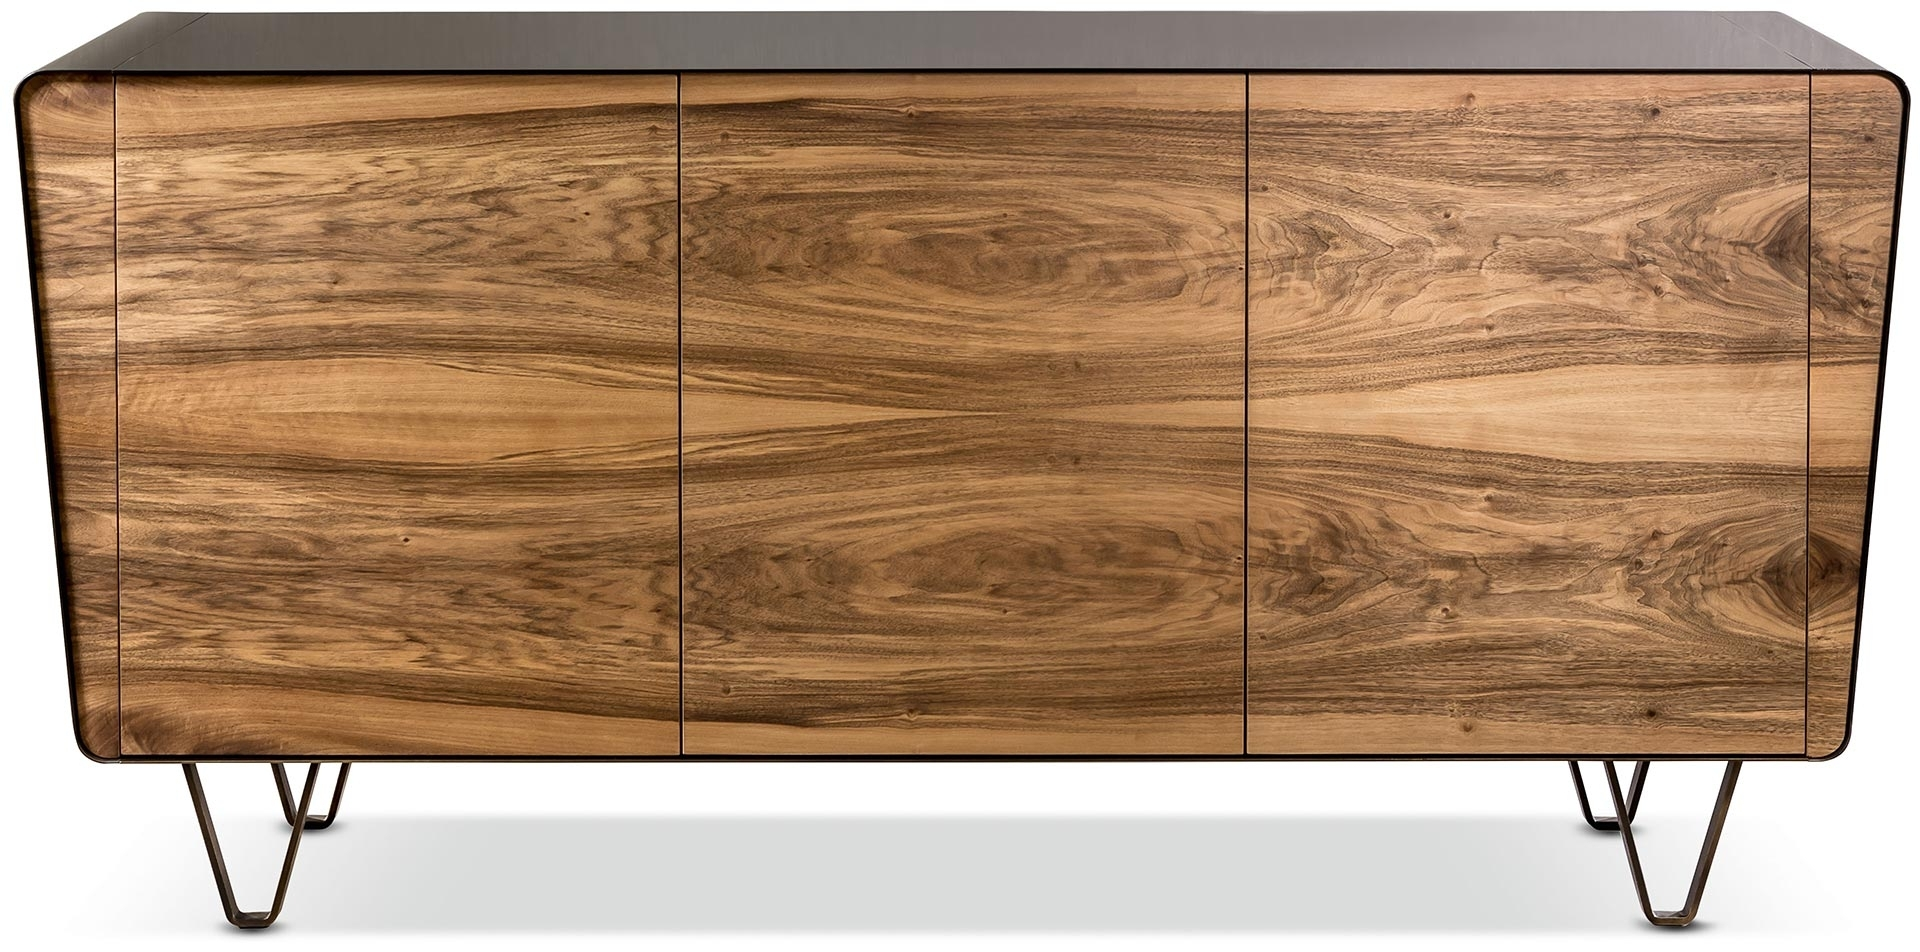 Icaro Sideboard - Cantori with 4 Door Wood Squares Sideboards (Image 18 of 30)